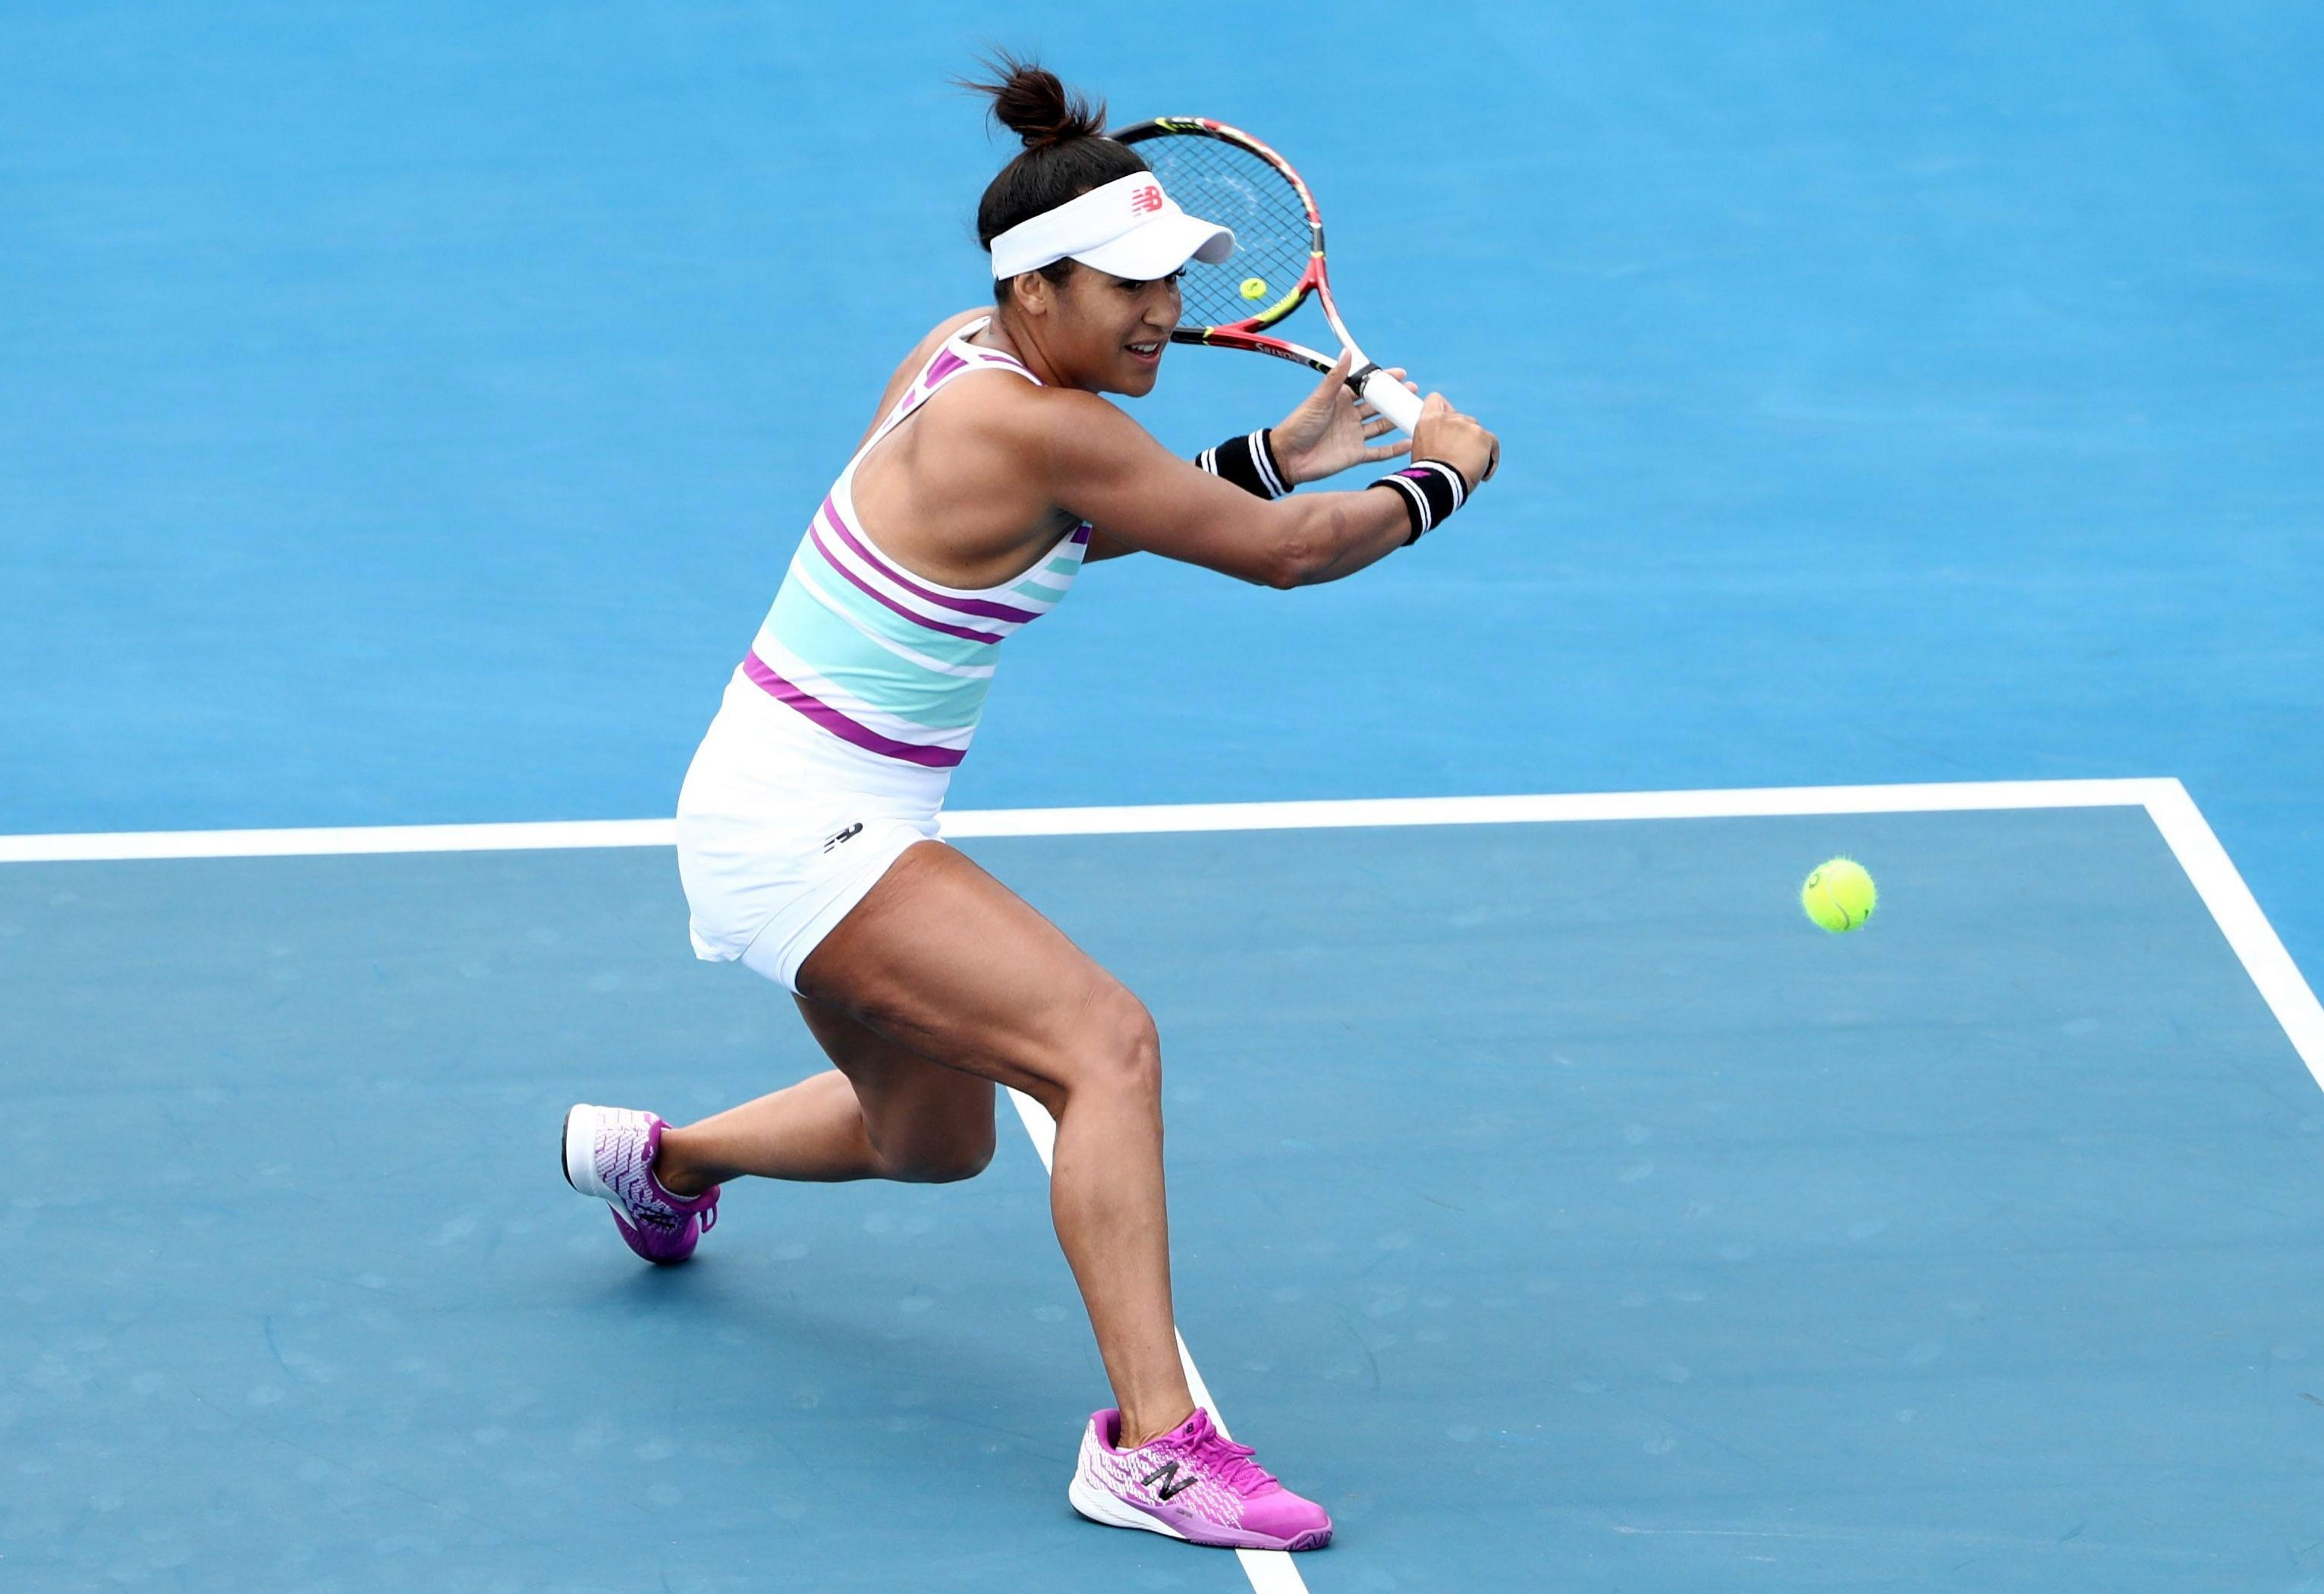 Heather Watson qualified for the main draw of the Hobart International after a 6-4 6-4 win over Isabelle Wallace